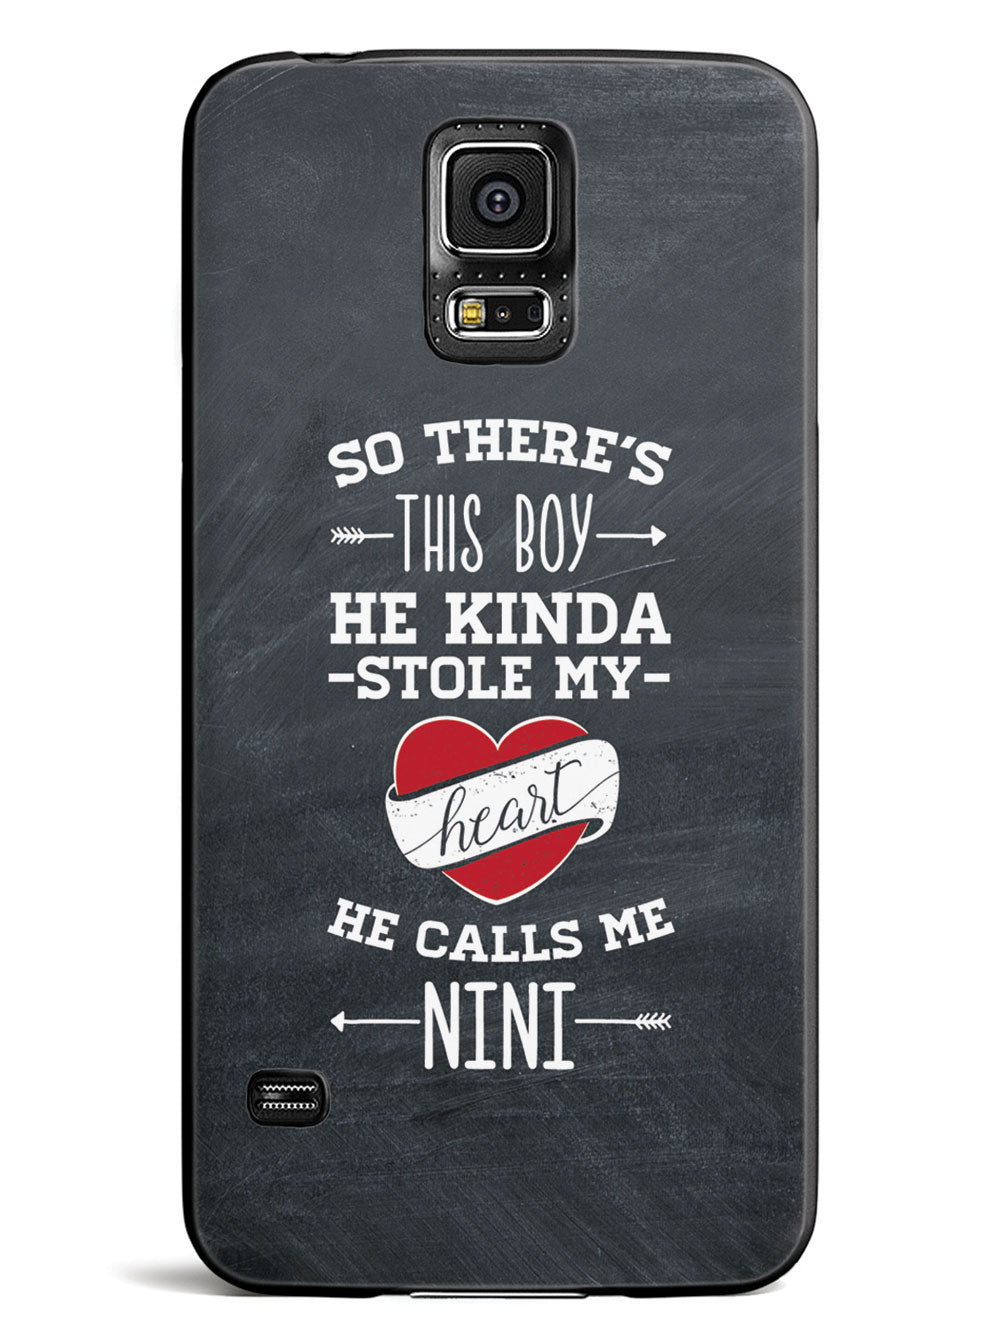 So There's This Boy - Nini Case